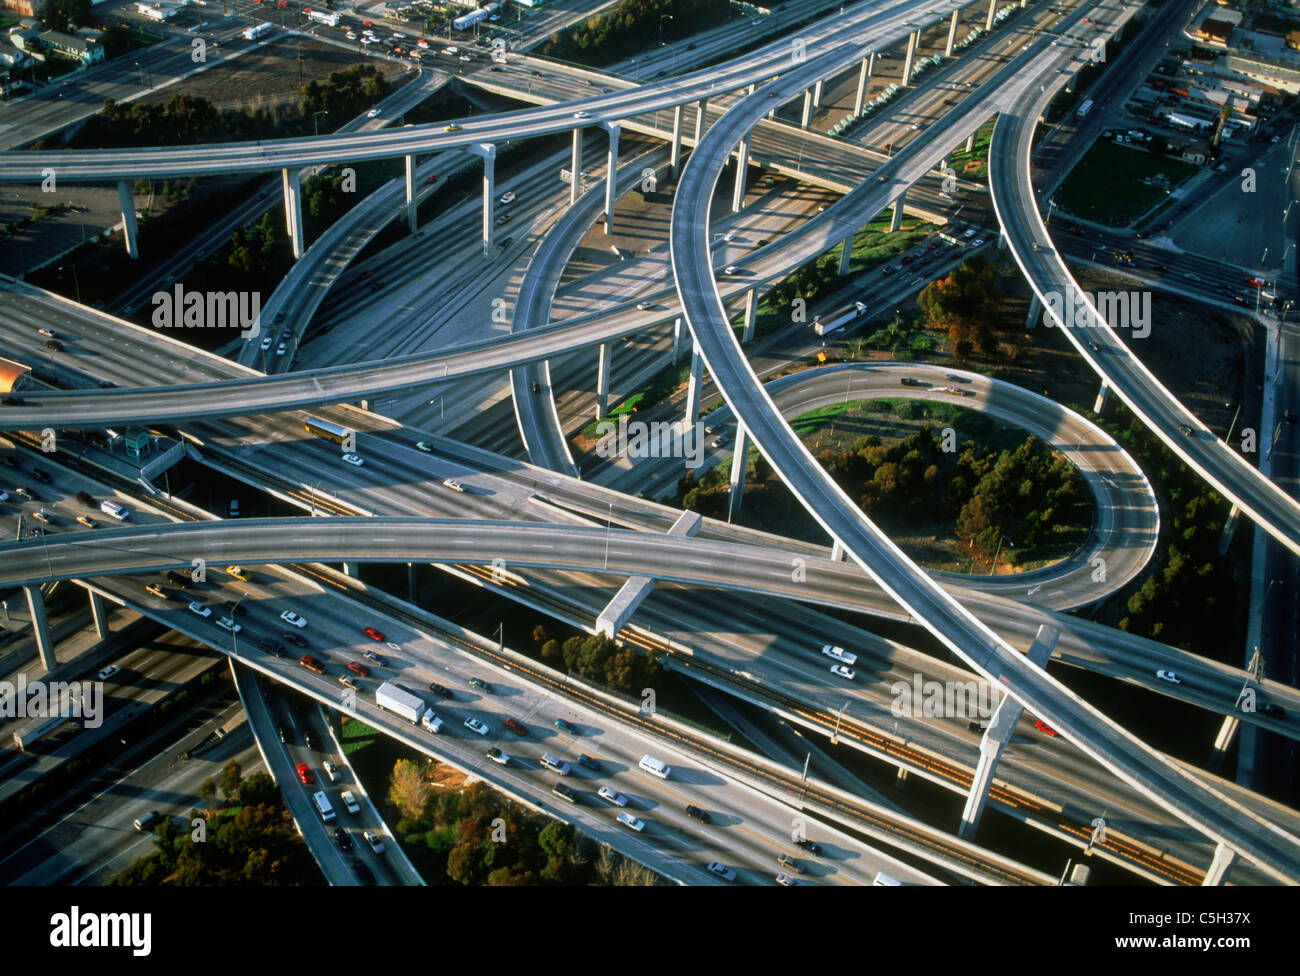 Aerial view of Los Angeles freeways - Stock Image